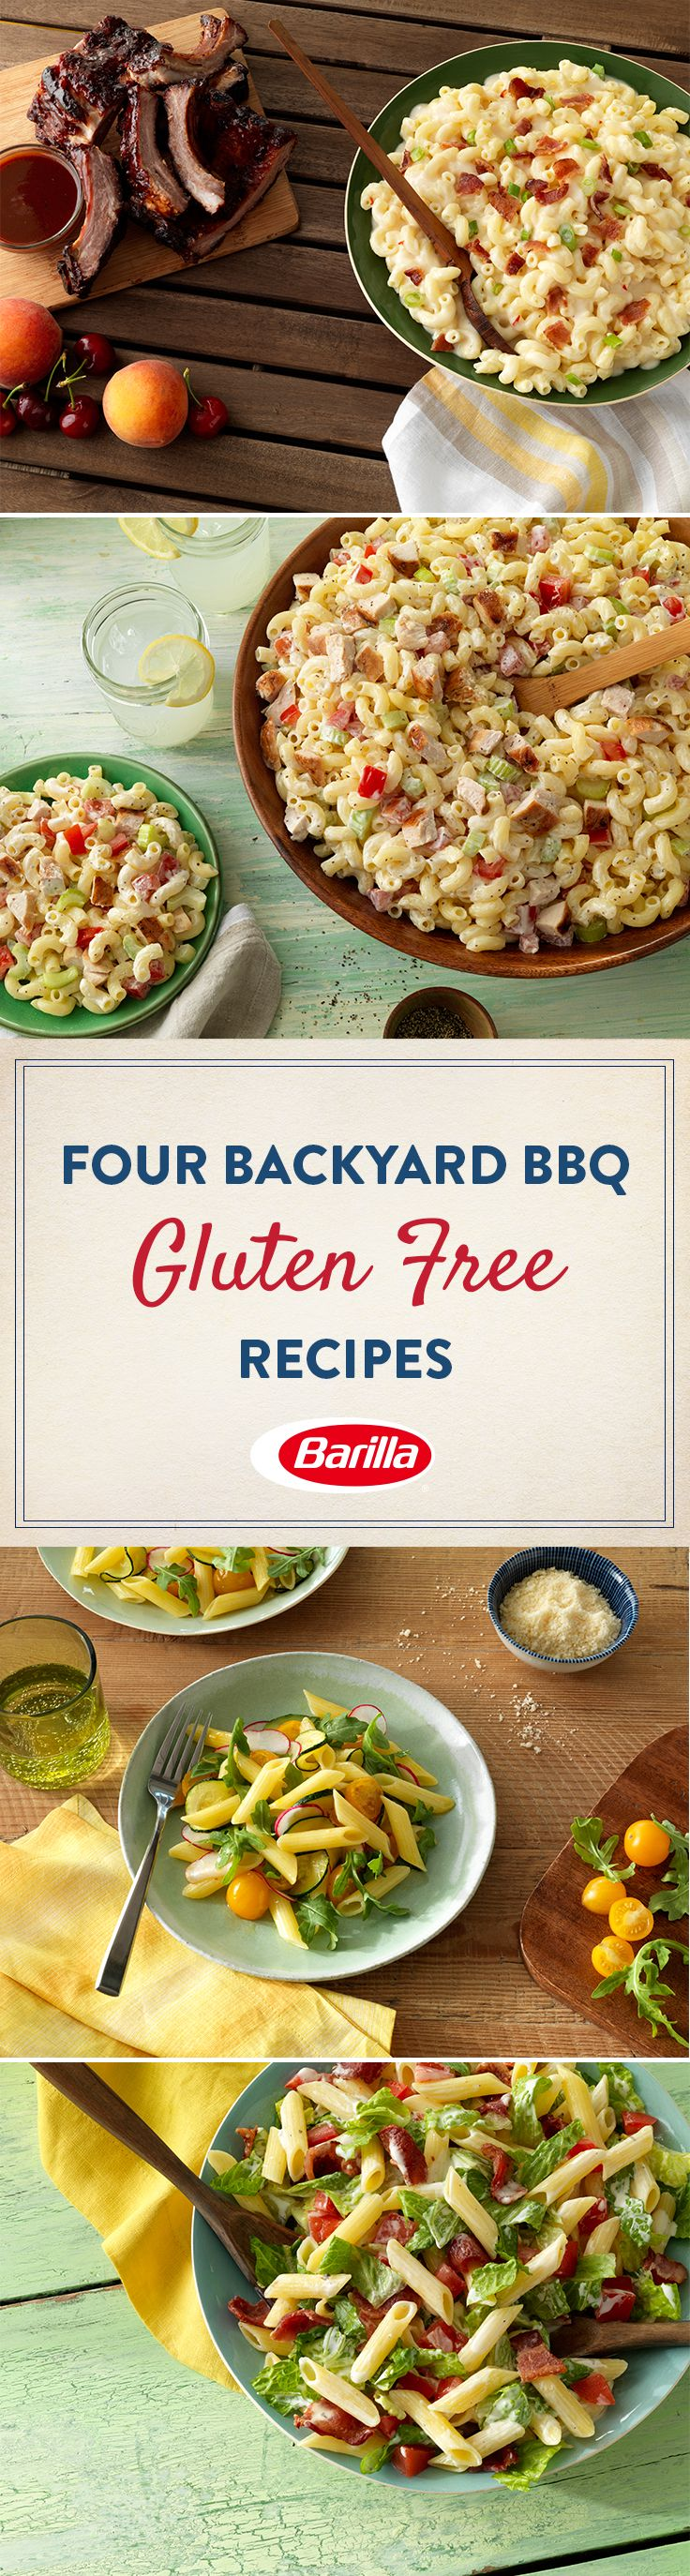 Take your backyard BBQ meals up a notch with these 4 delicious and easy gluten free recipes.